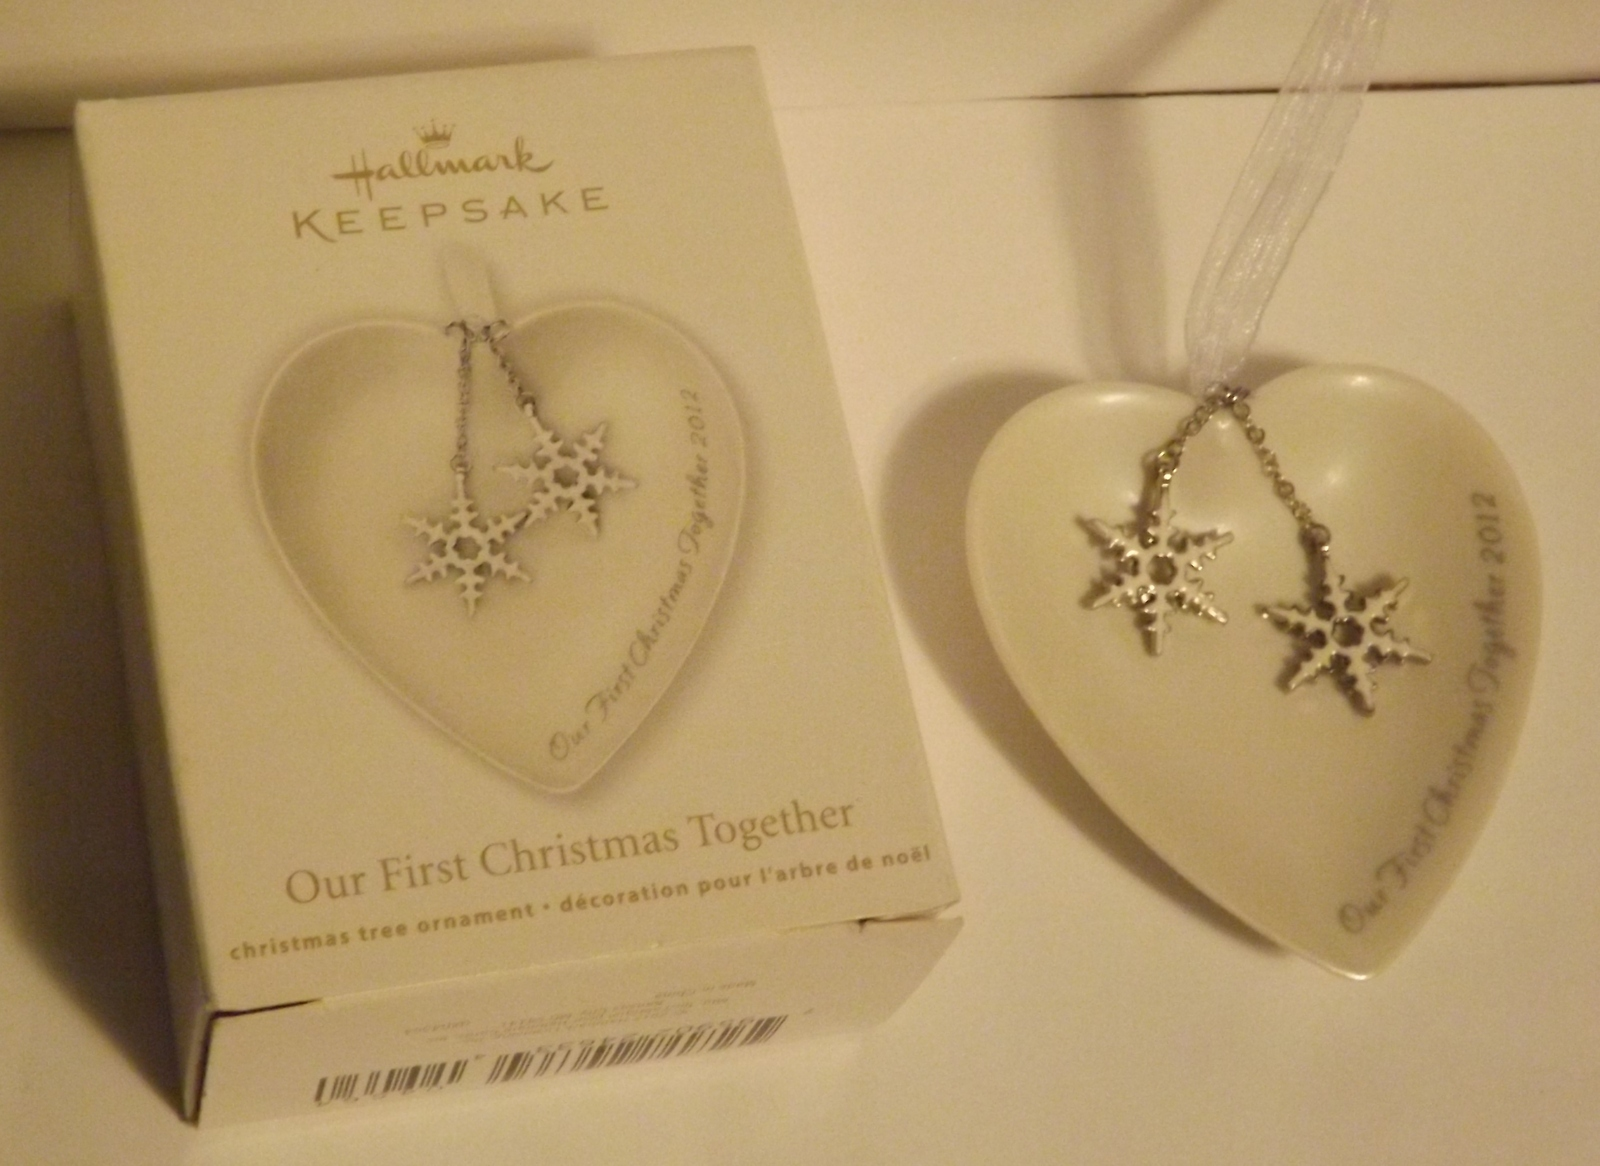 Hallmark Keepsake Ornament Our First Christmas Together ...